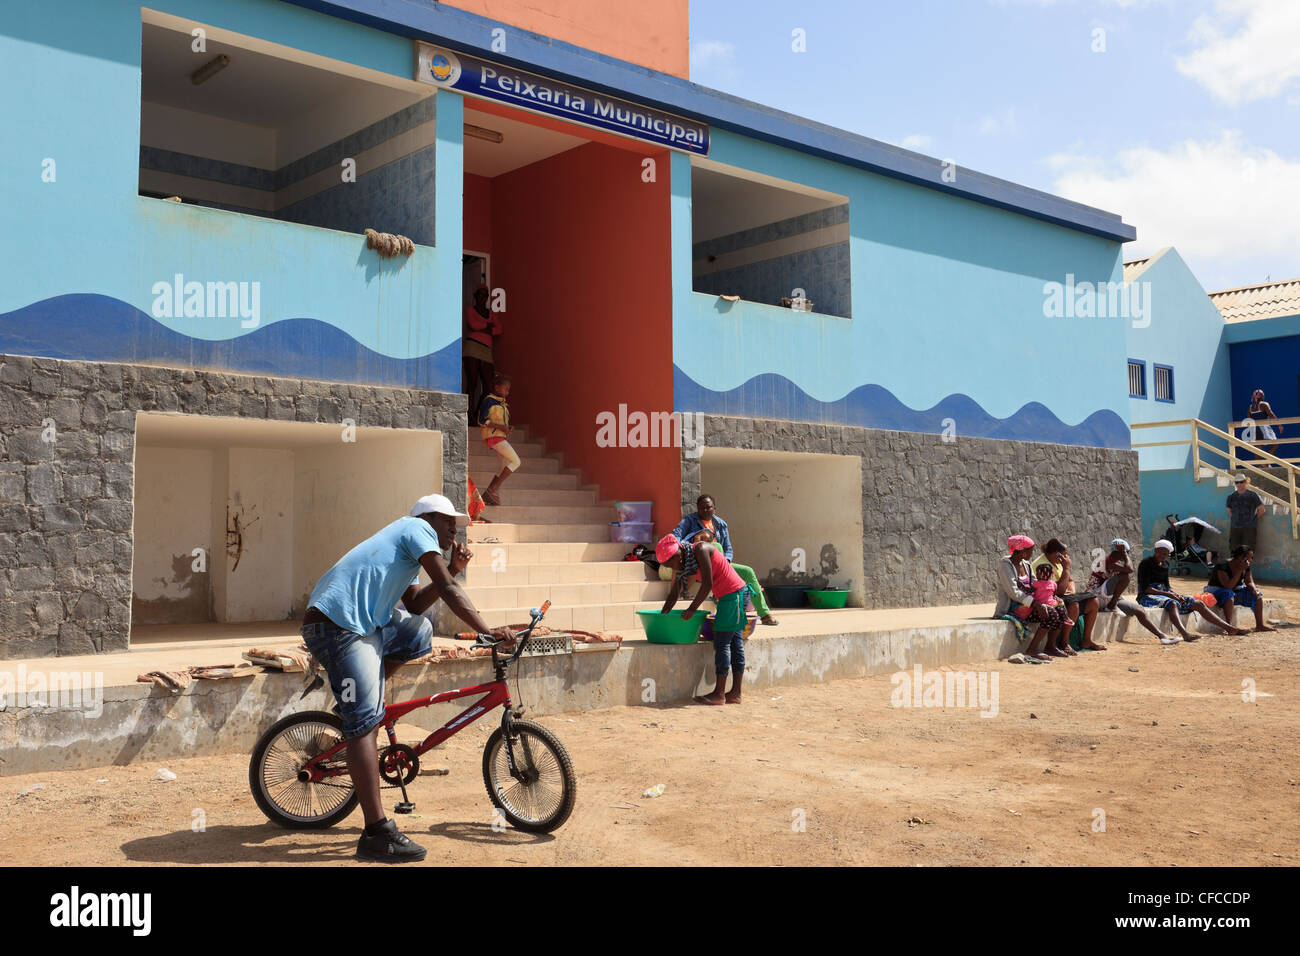 Sal Rei, Boa Vista, Cape Verde Islands. Port scene with local people sitting outside the new municipal fish market. - Stock Image